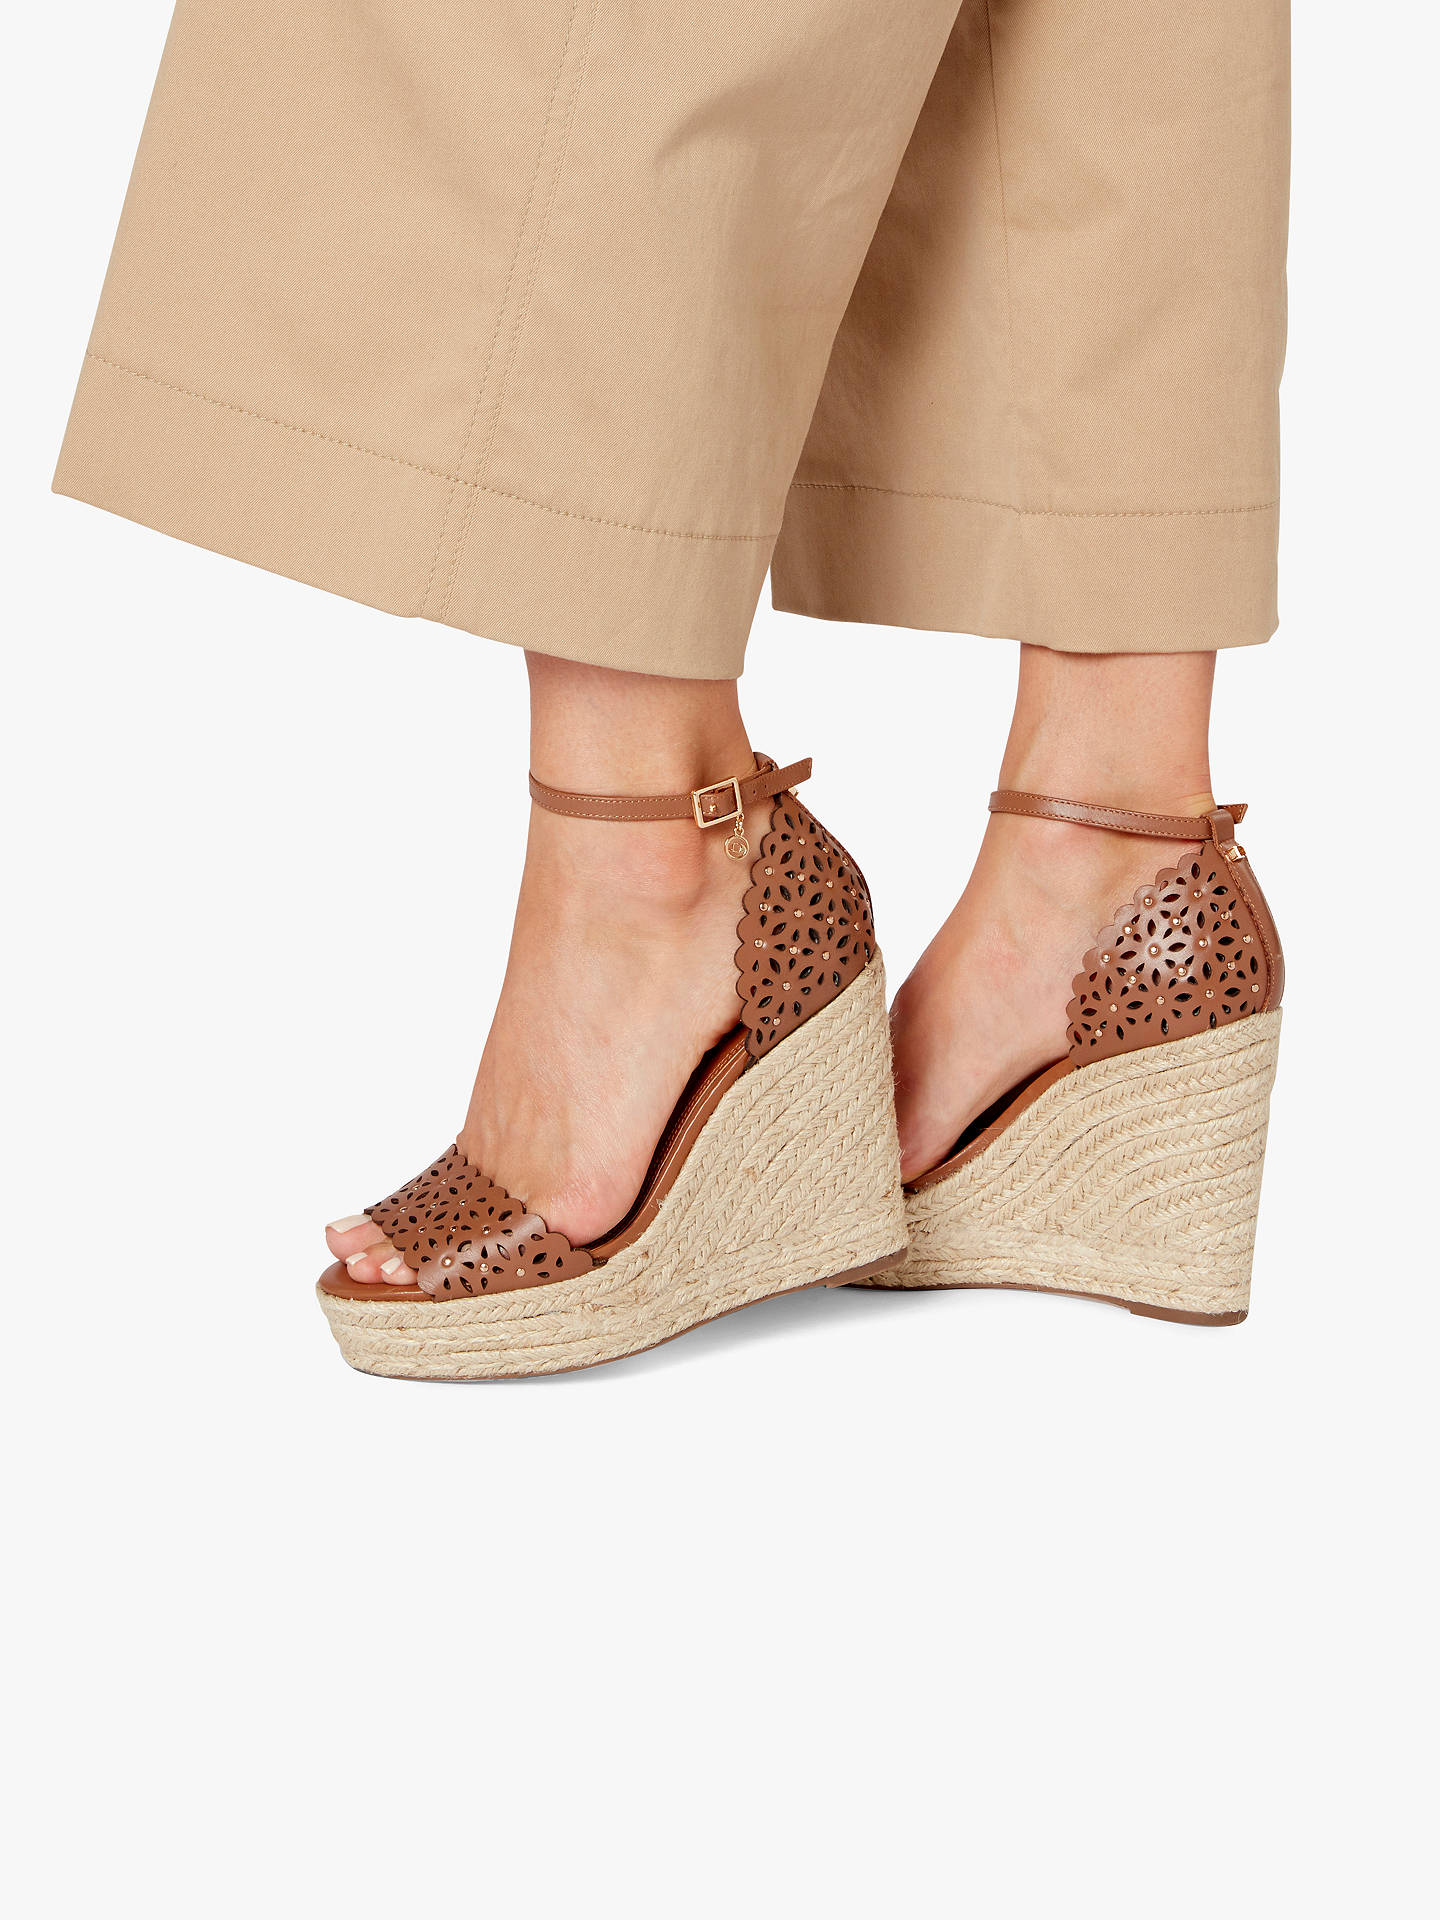 BuyDune Kamilea Cut-Out Stud Wedged High Heel Sandals, Tan Leather, 3 Online at johnlewis.com